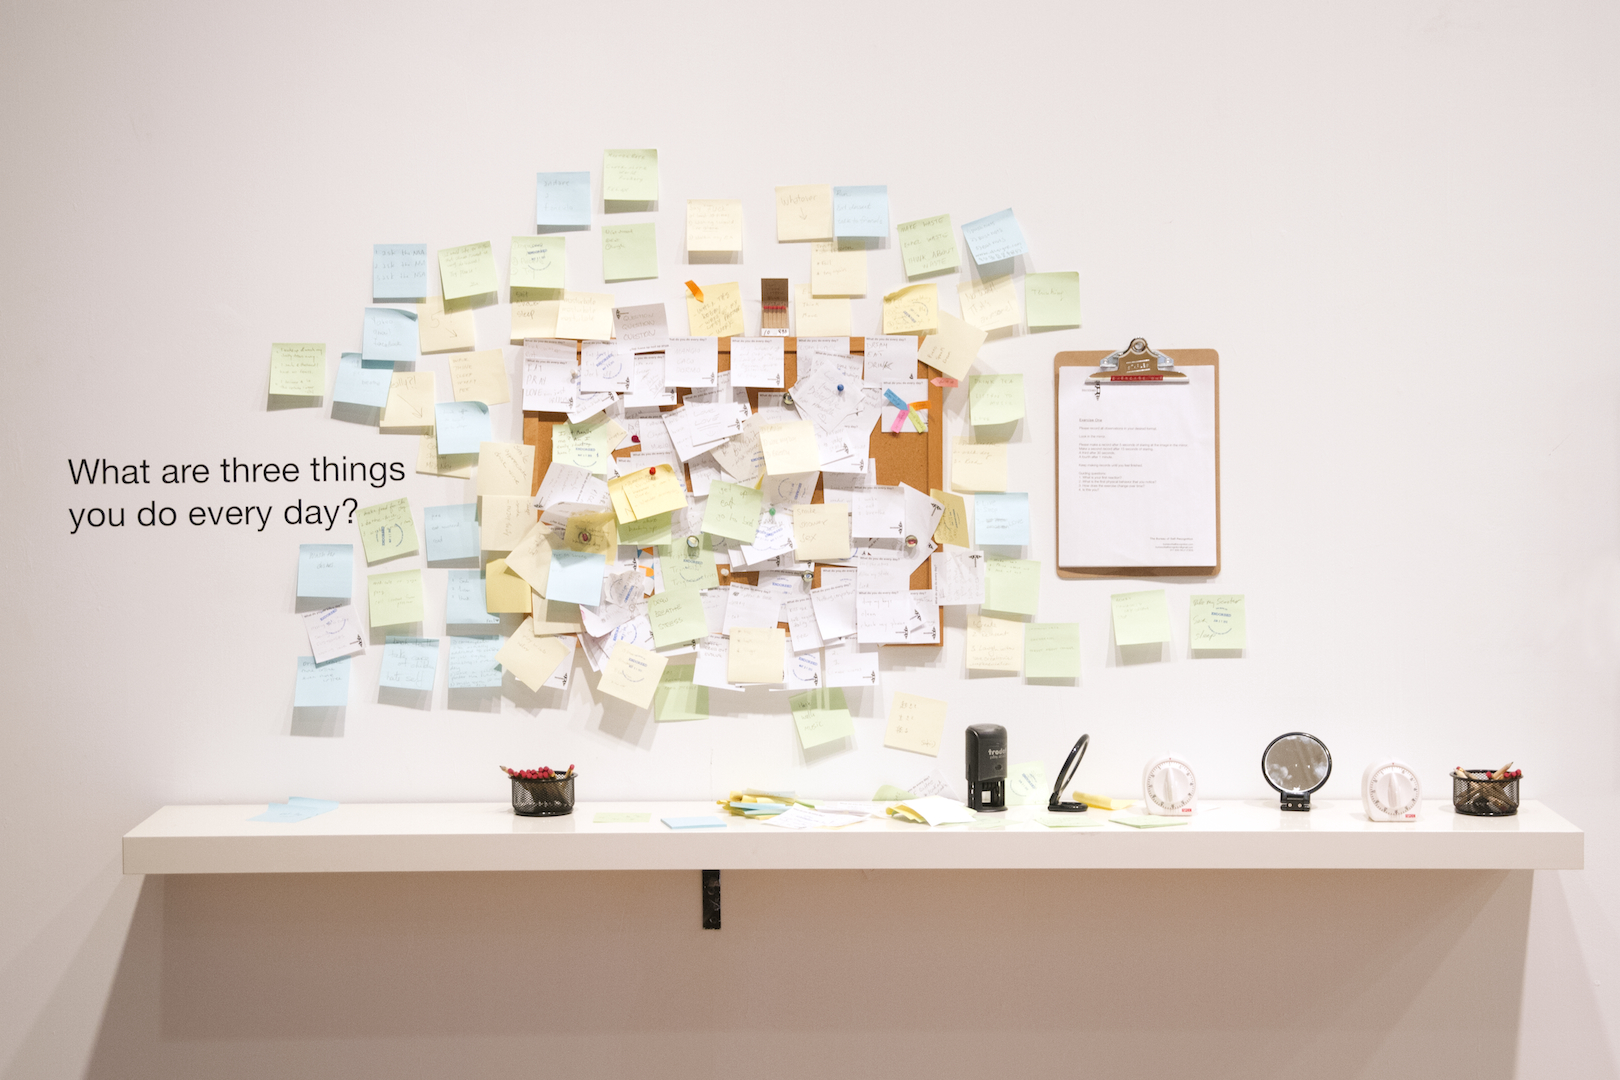 Installation View: Three Things You Do Every Day